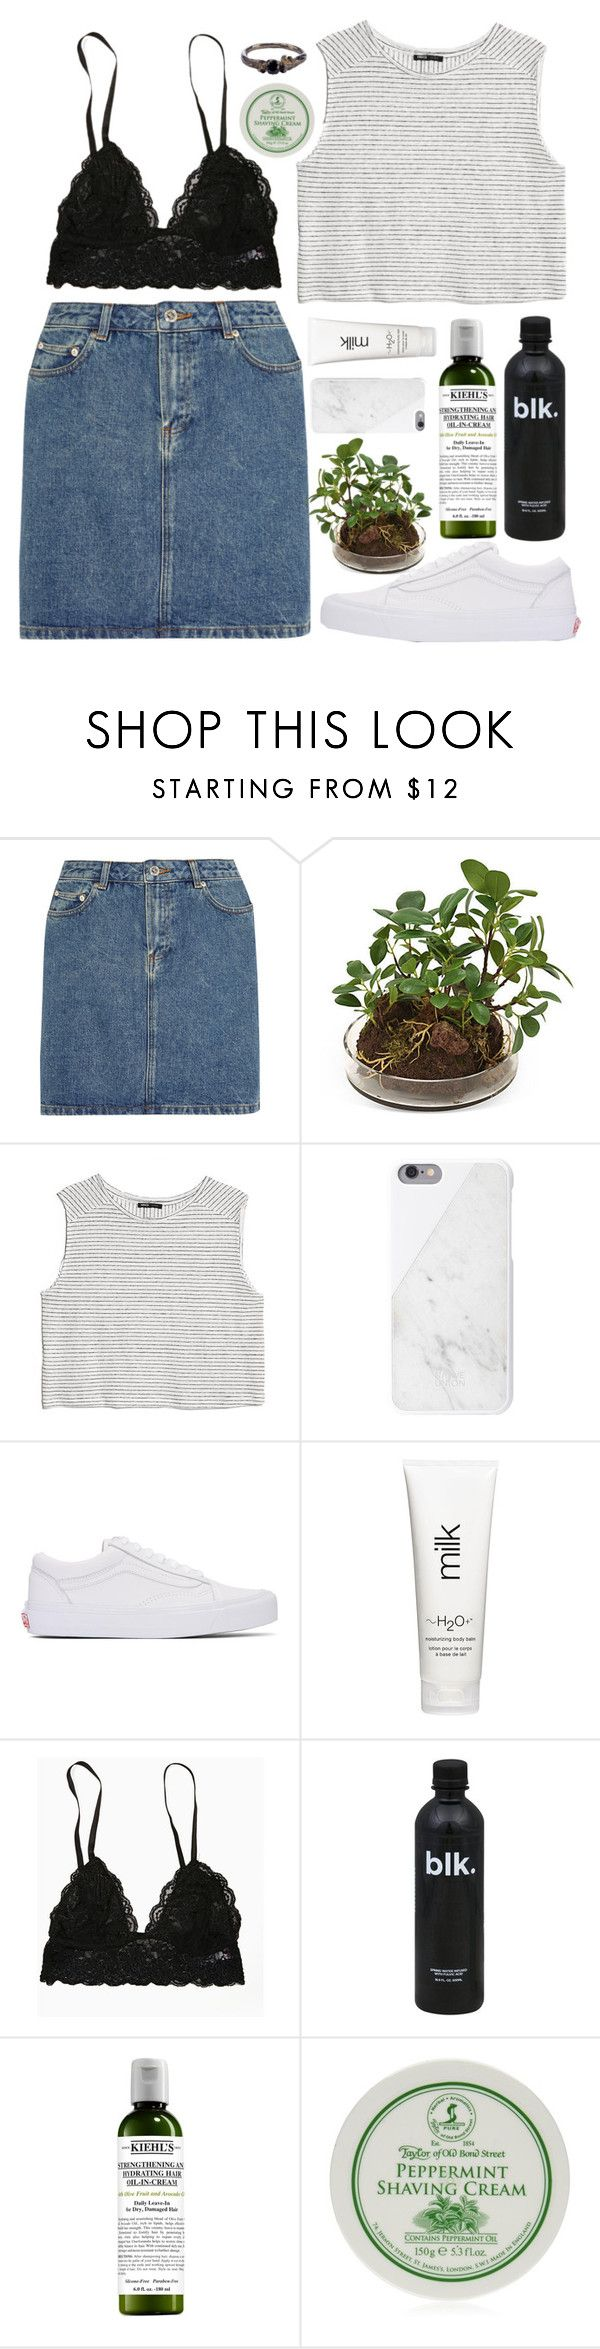 """""""IT MIGHT BE OVER SOON"""" by little-wild ❤ liked on Polyvore featuring A.P.C., Distinctive Designs, MANGO, Native Union, Vans, H2O+, Kiehl's, Taylor of Old Bond Street and Disce Mori"""